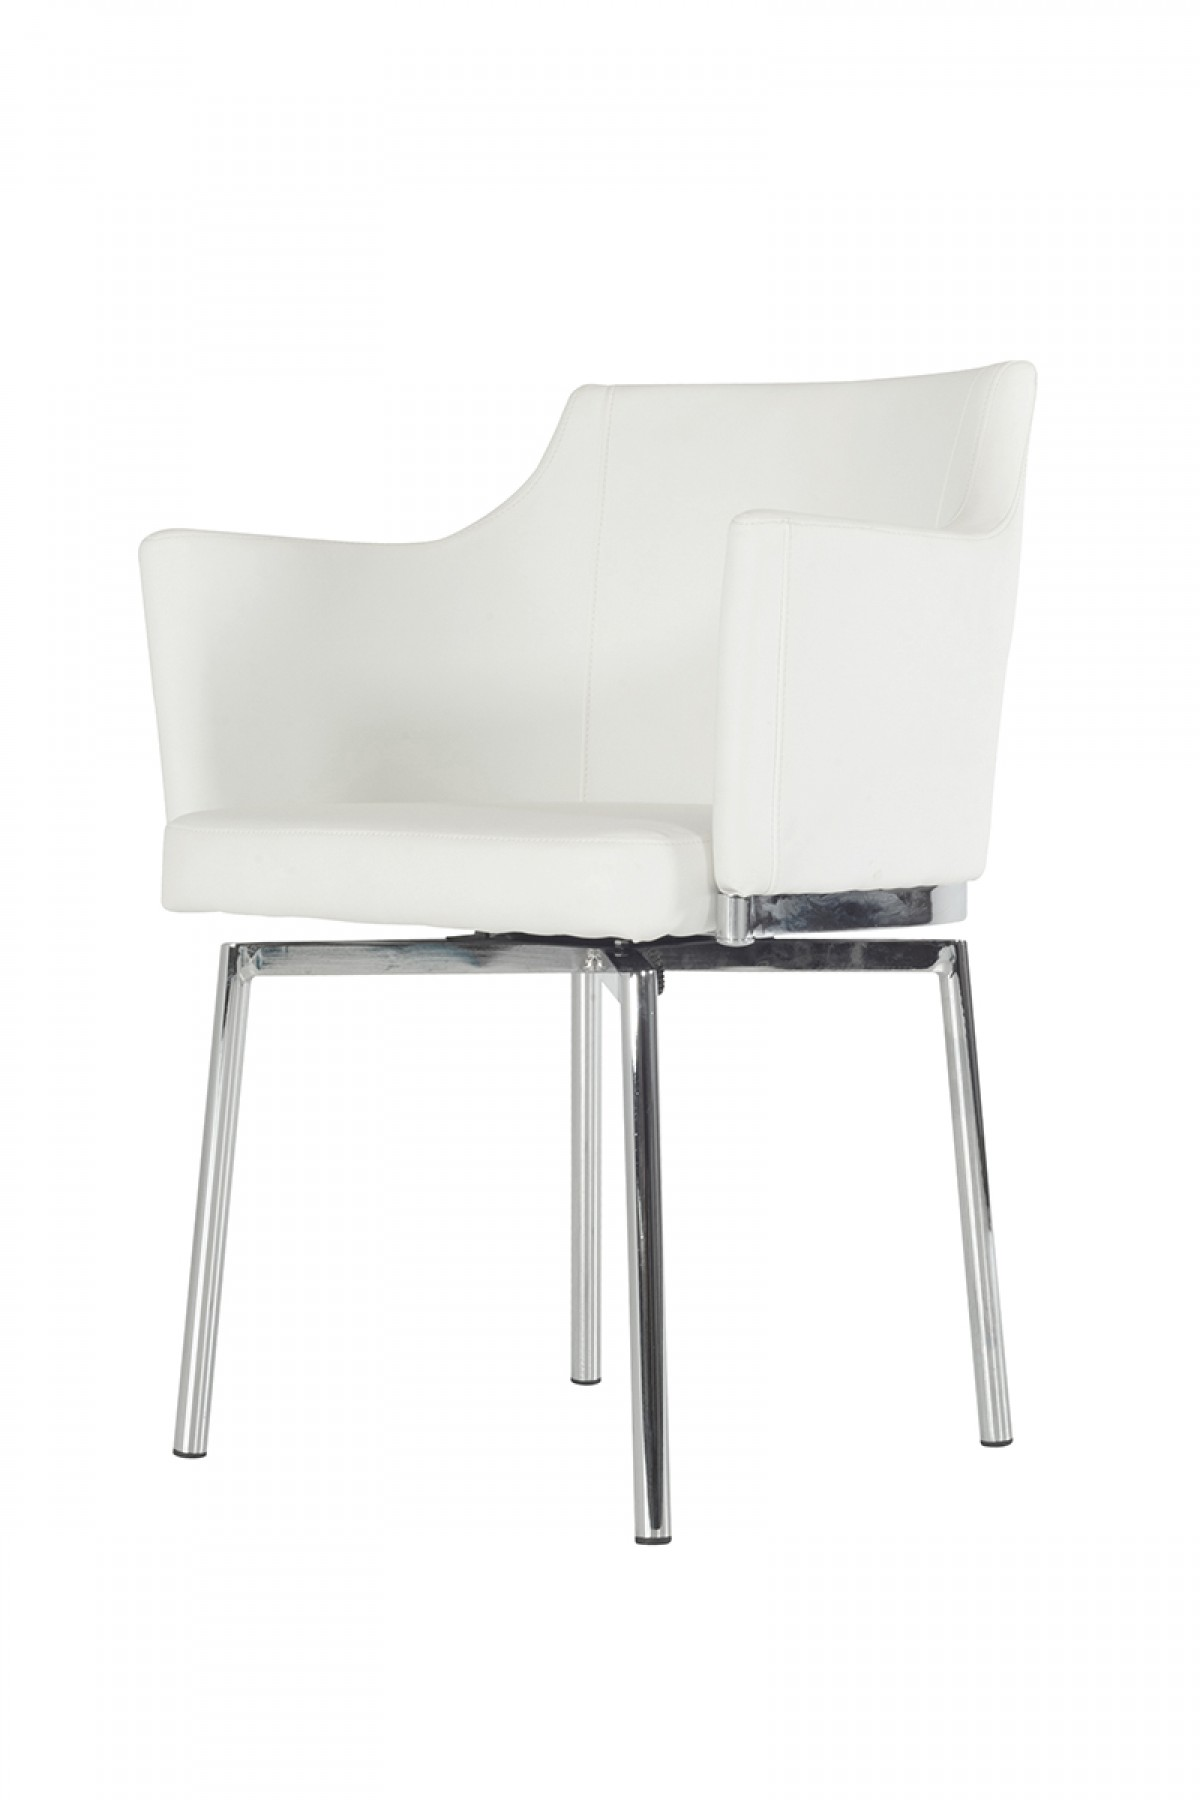 modern white chair the empty modrest kaweah dining chairs